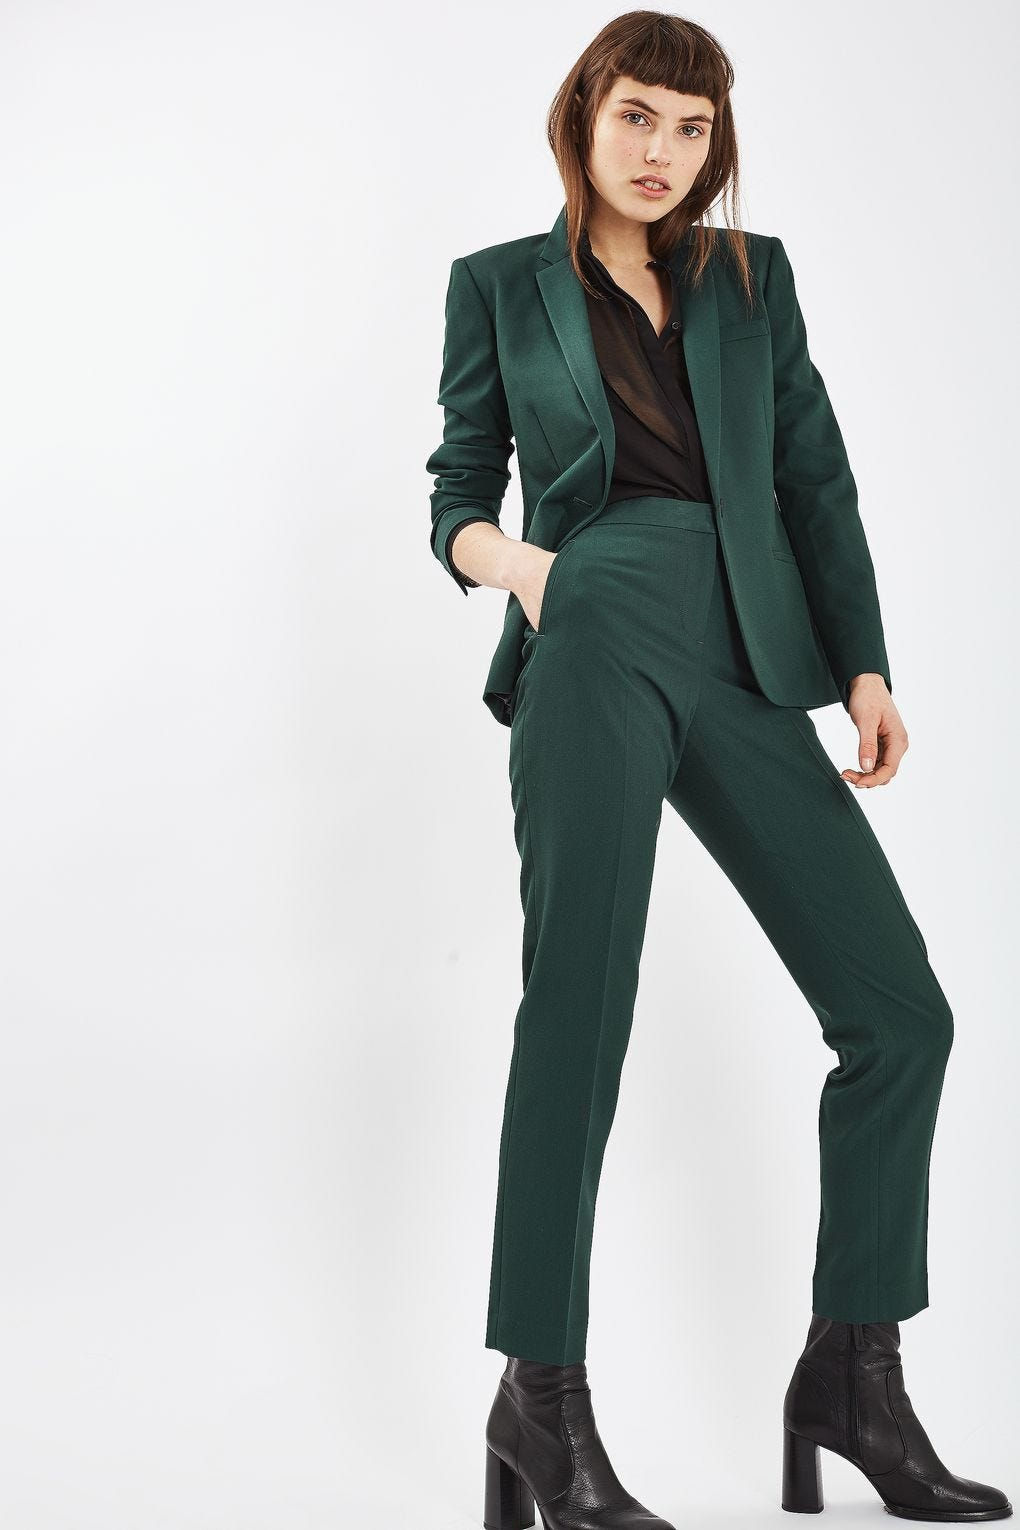 best womens suits by price point budget investment